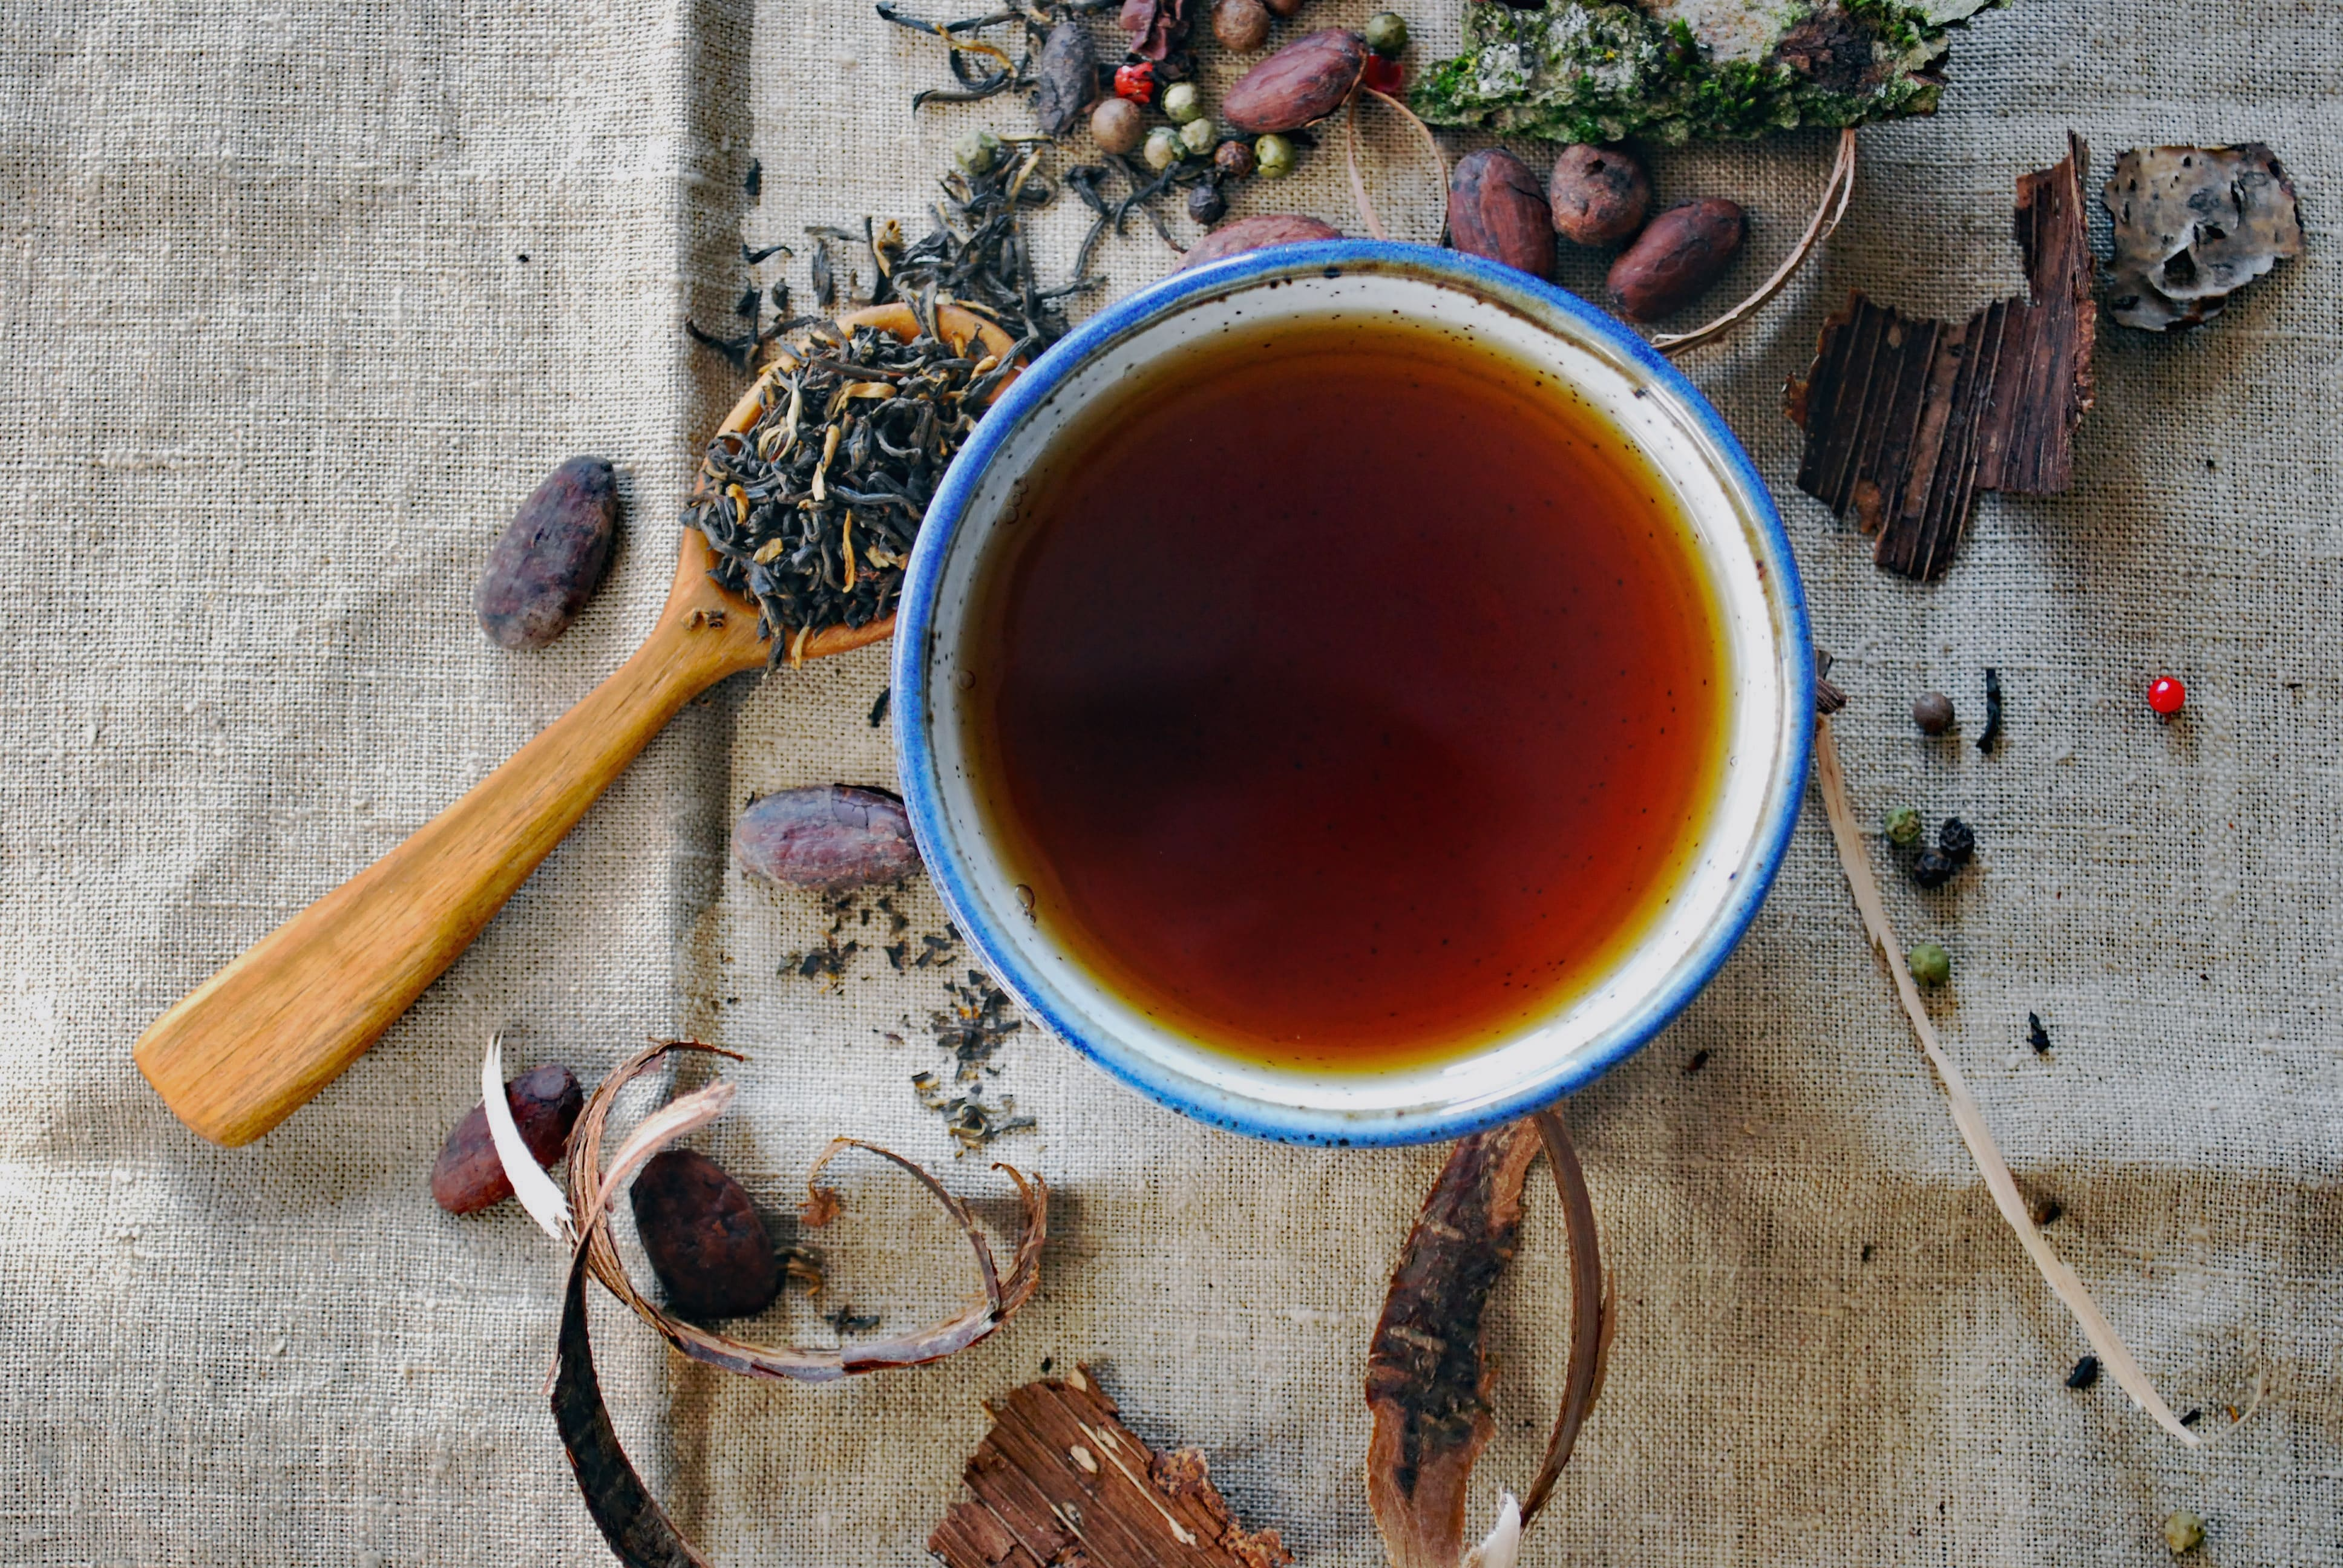 Digestive Herbal Teas as an anti-bloating remedy